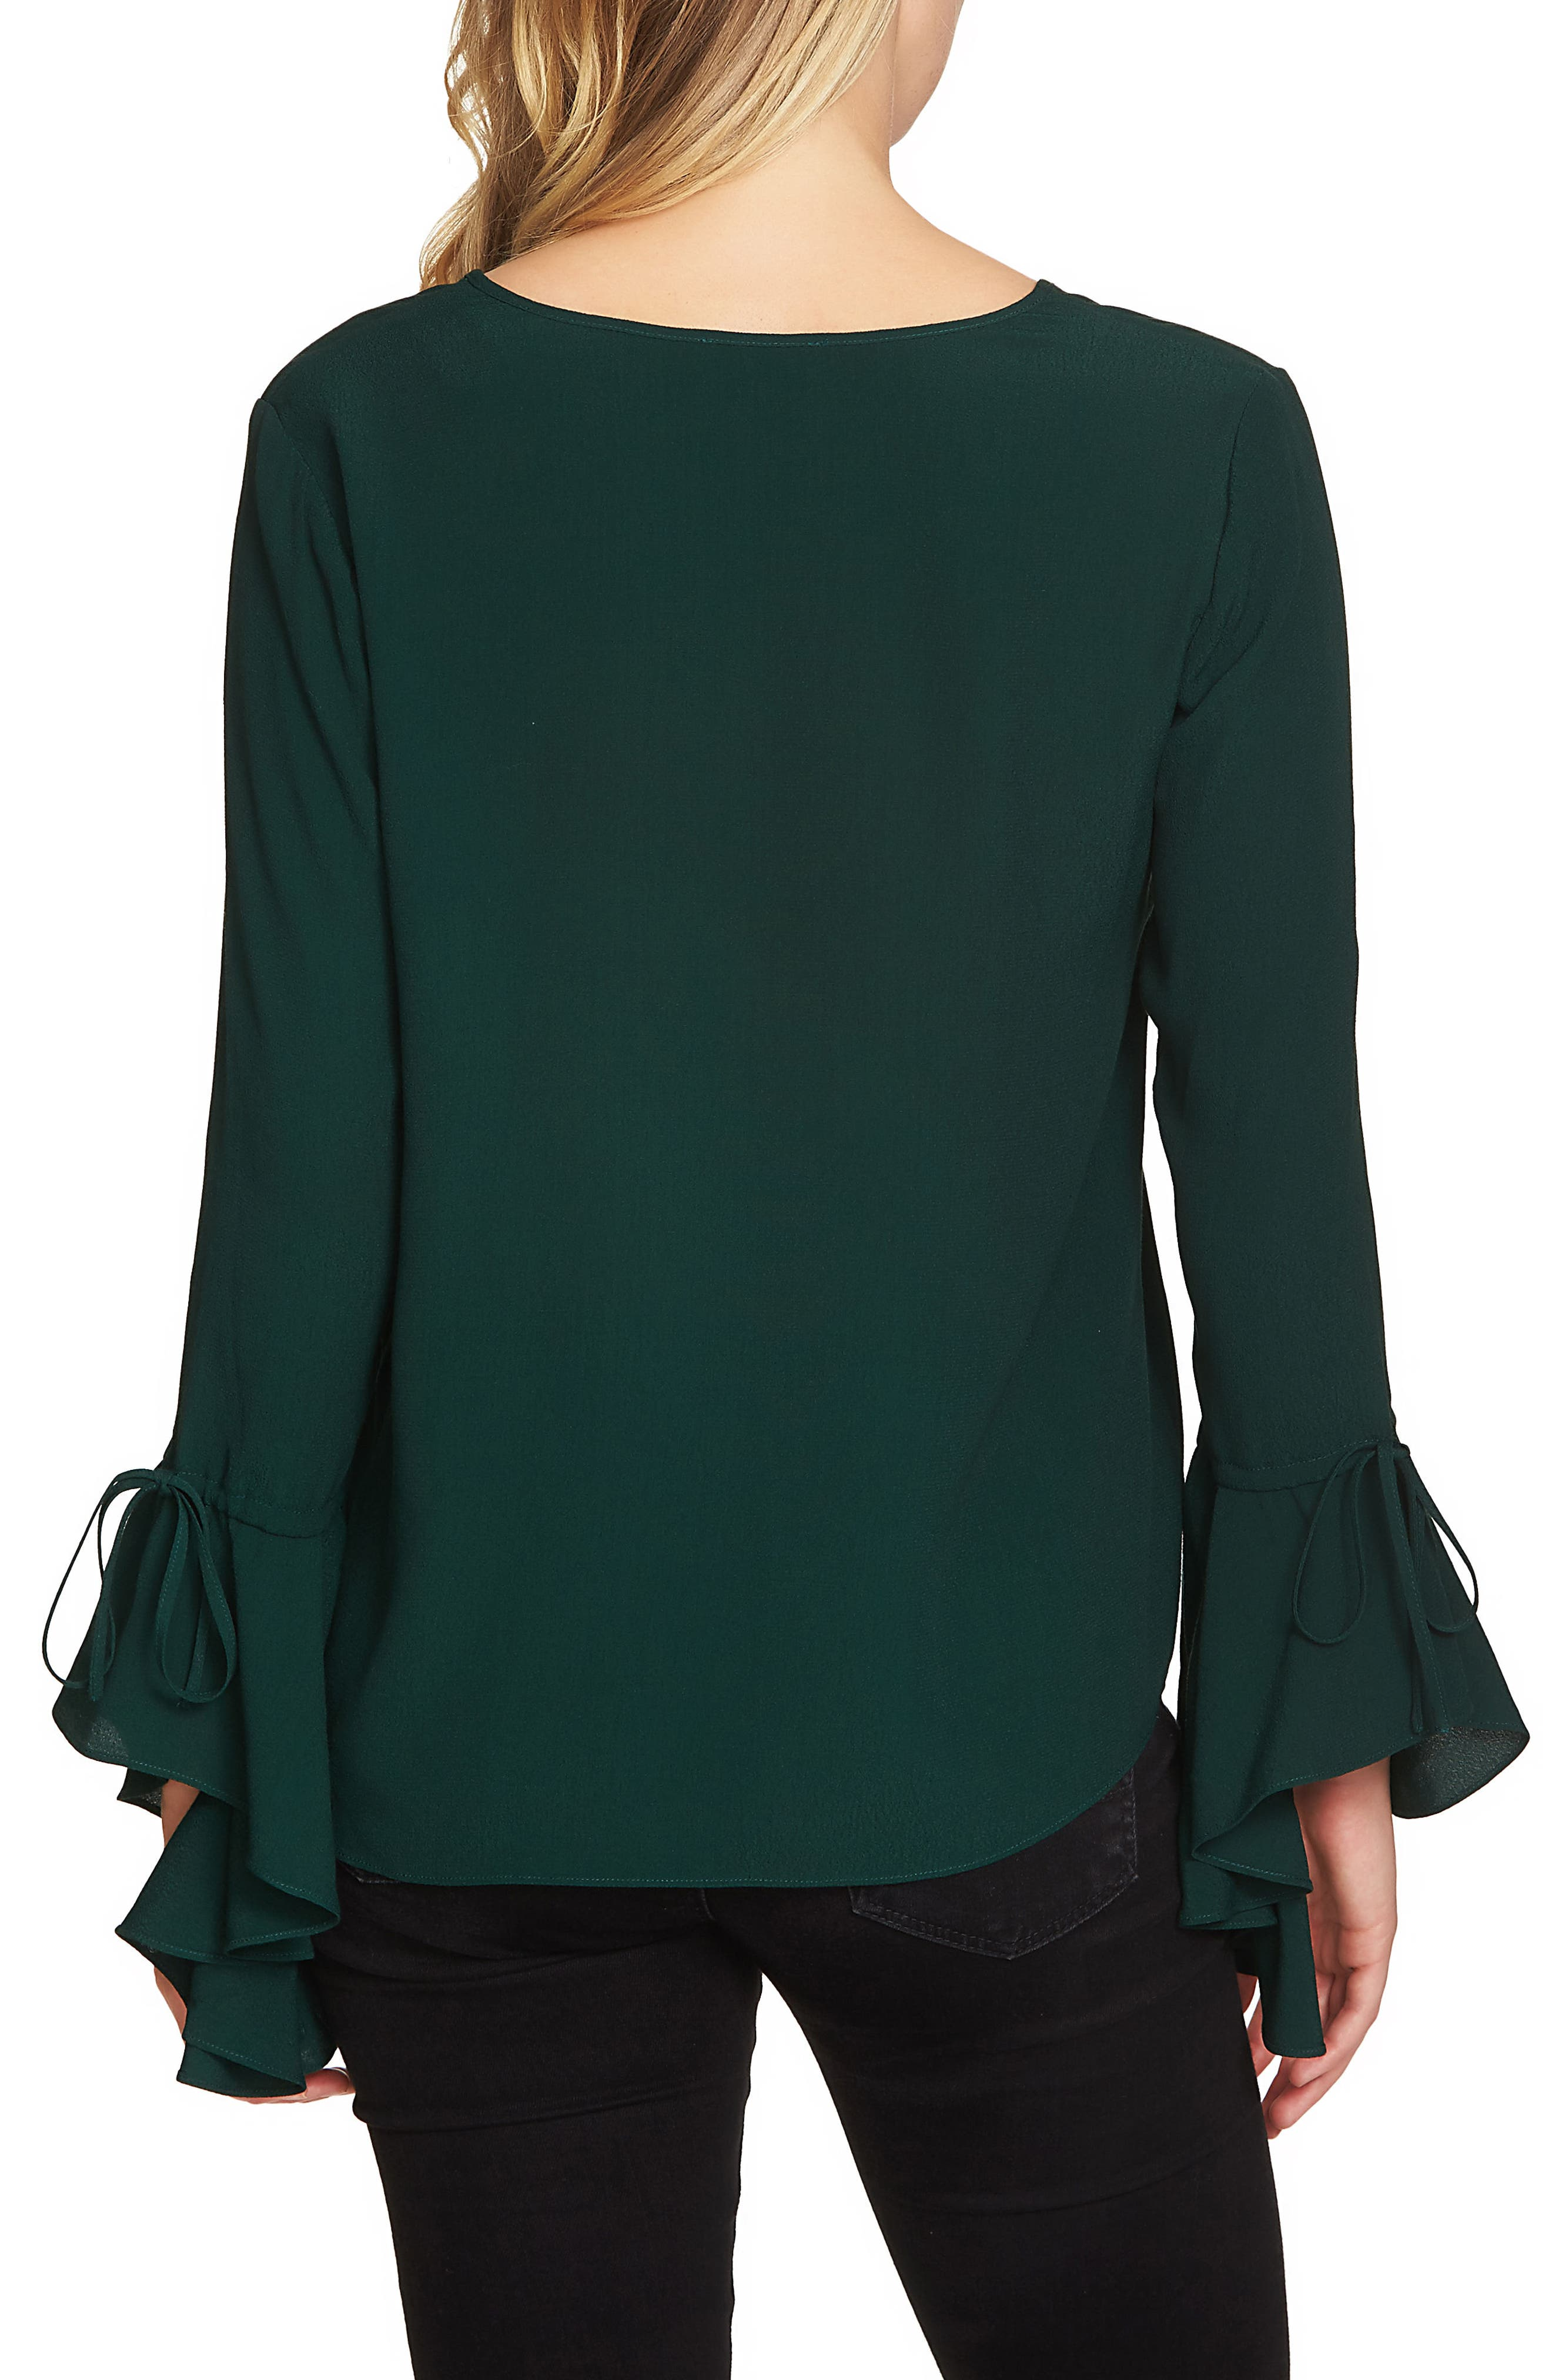 Cascade Sleeve Blouse,                             Alternate thumbnail 2, color,                             Jasper Green